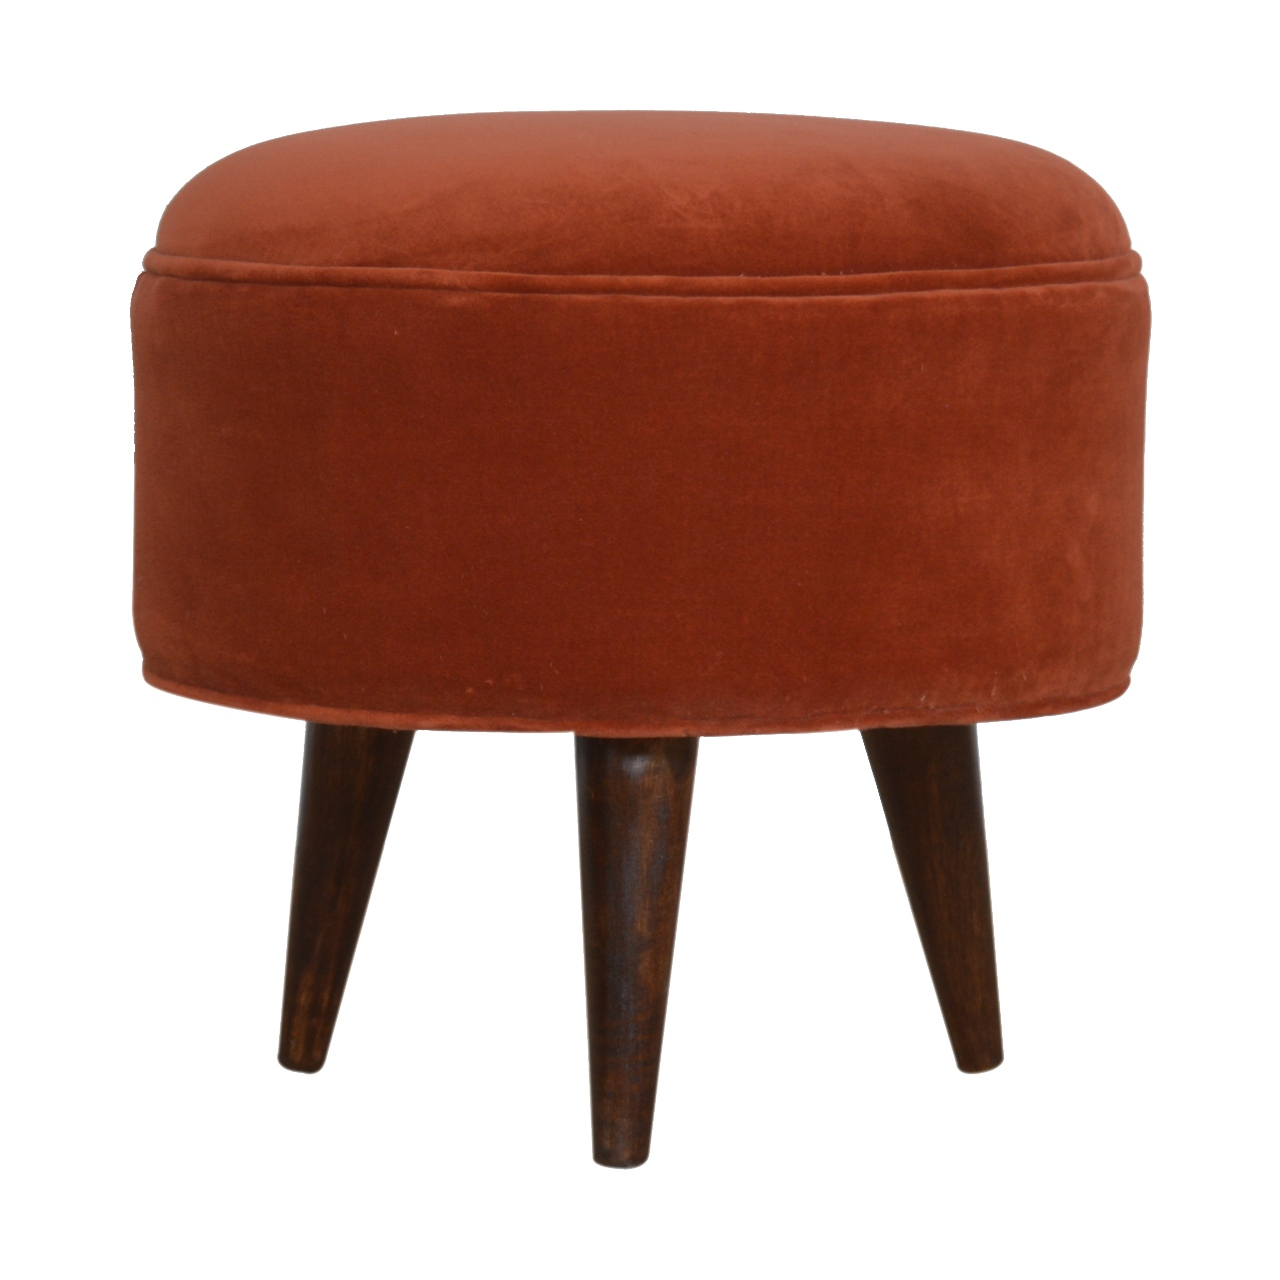 The Home Furnishings Company Brick Red Velvet Foot Rest Stool